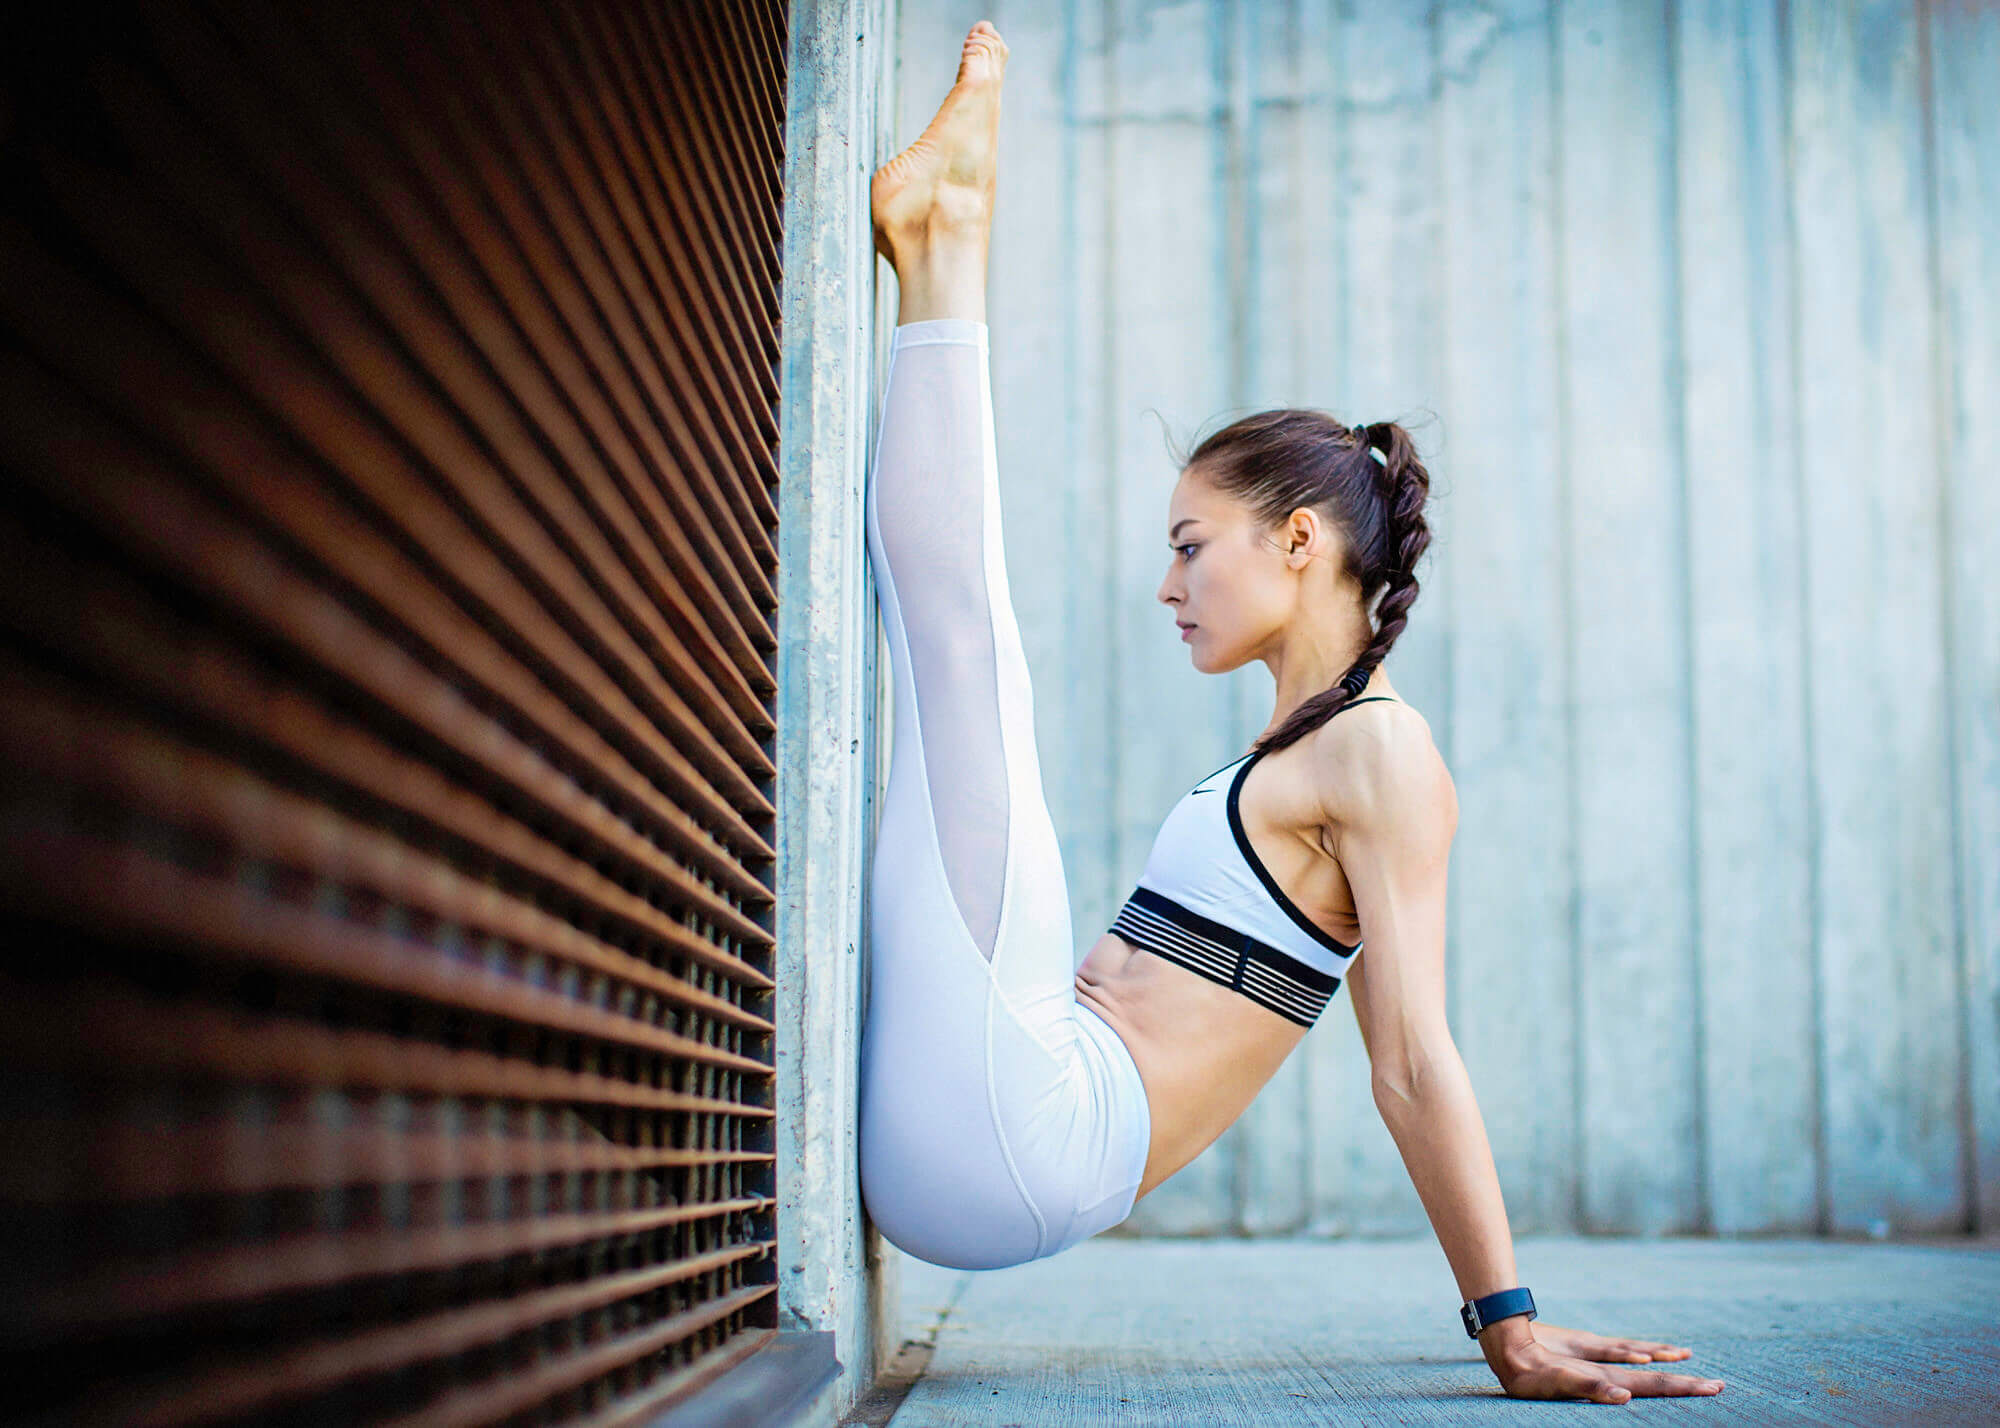 Yoga and fitness model posing against wall